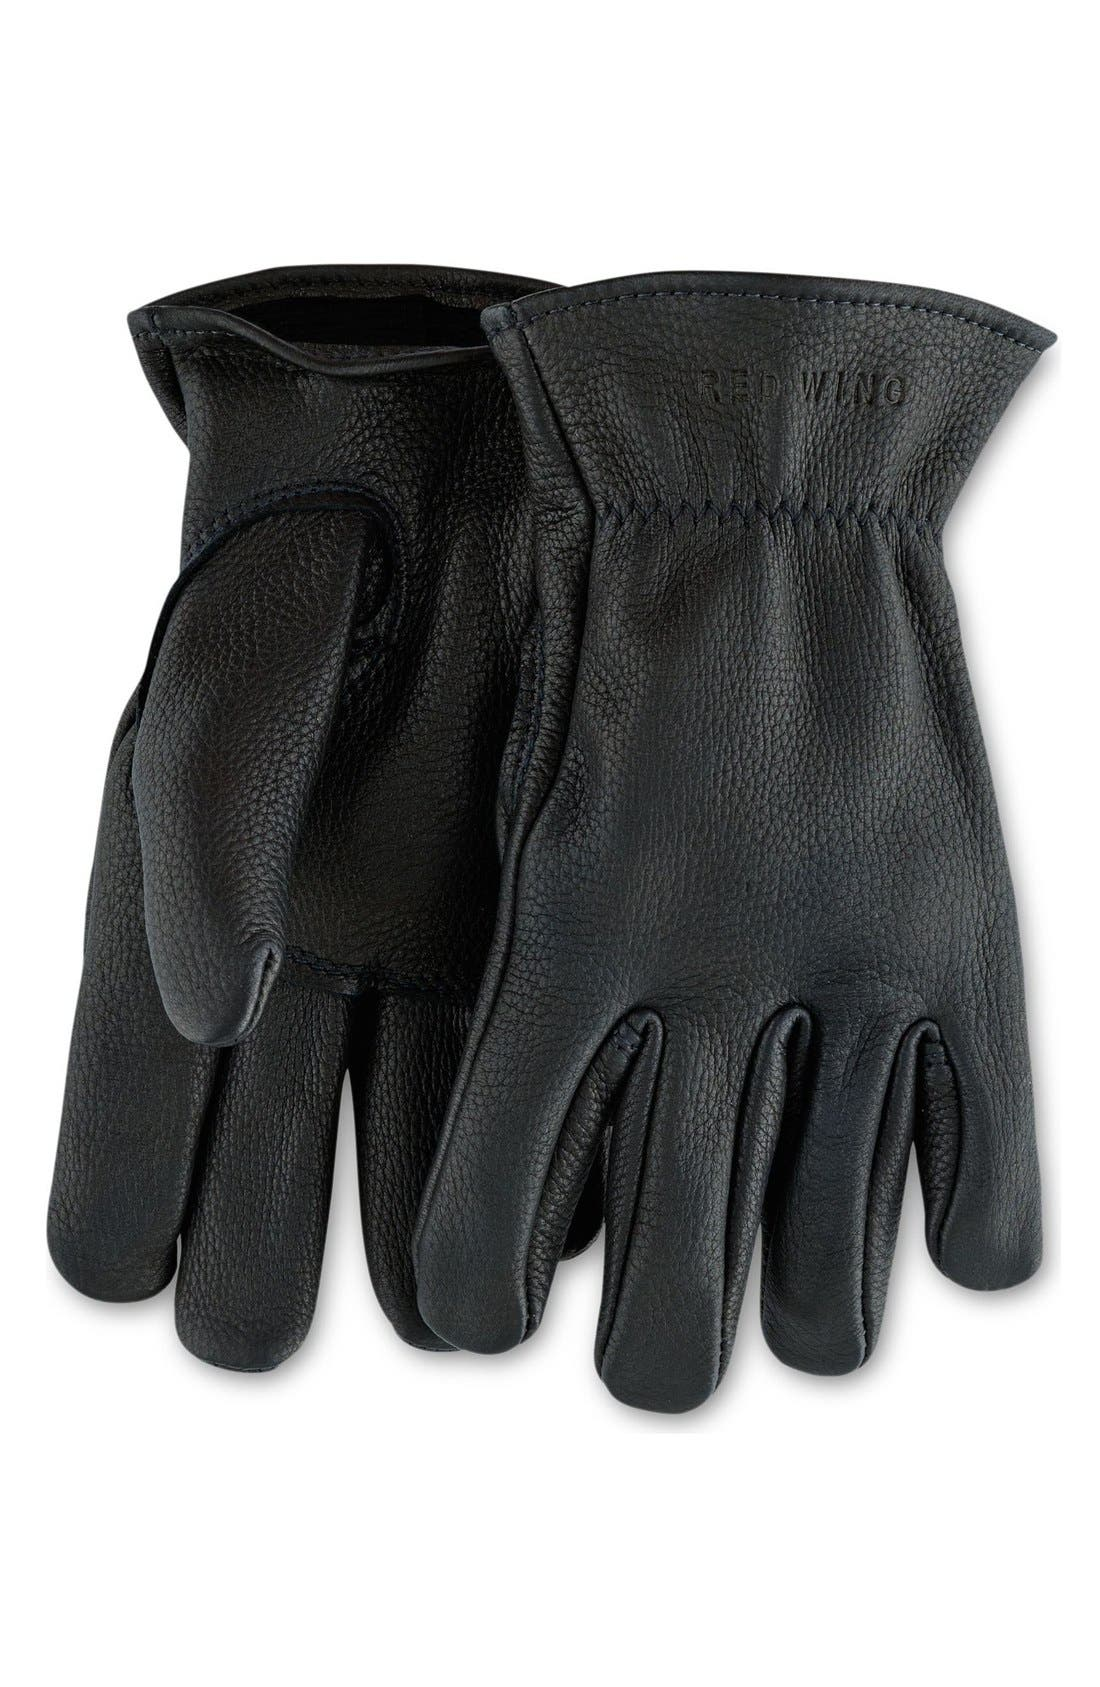 RED WING, Buckskin Leather Gloves, Main thumbnail 1, color, 001